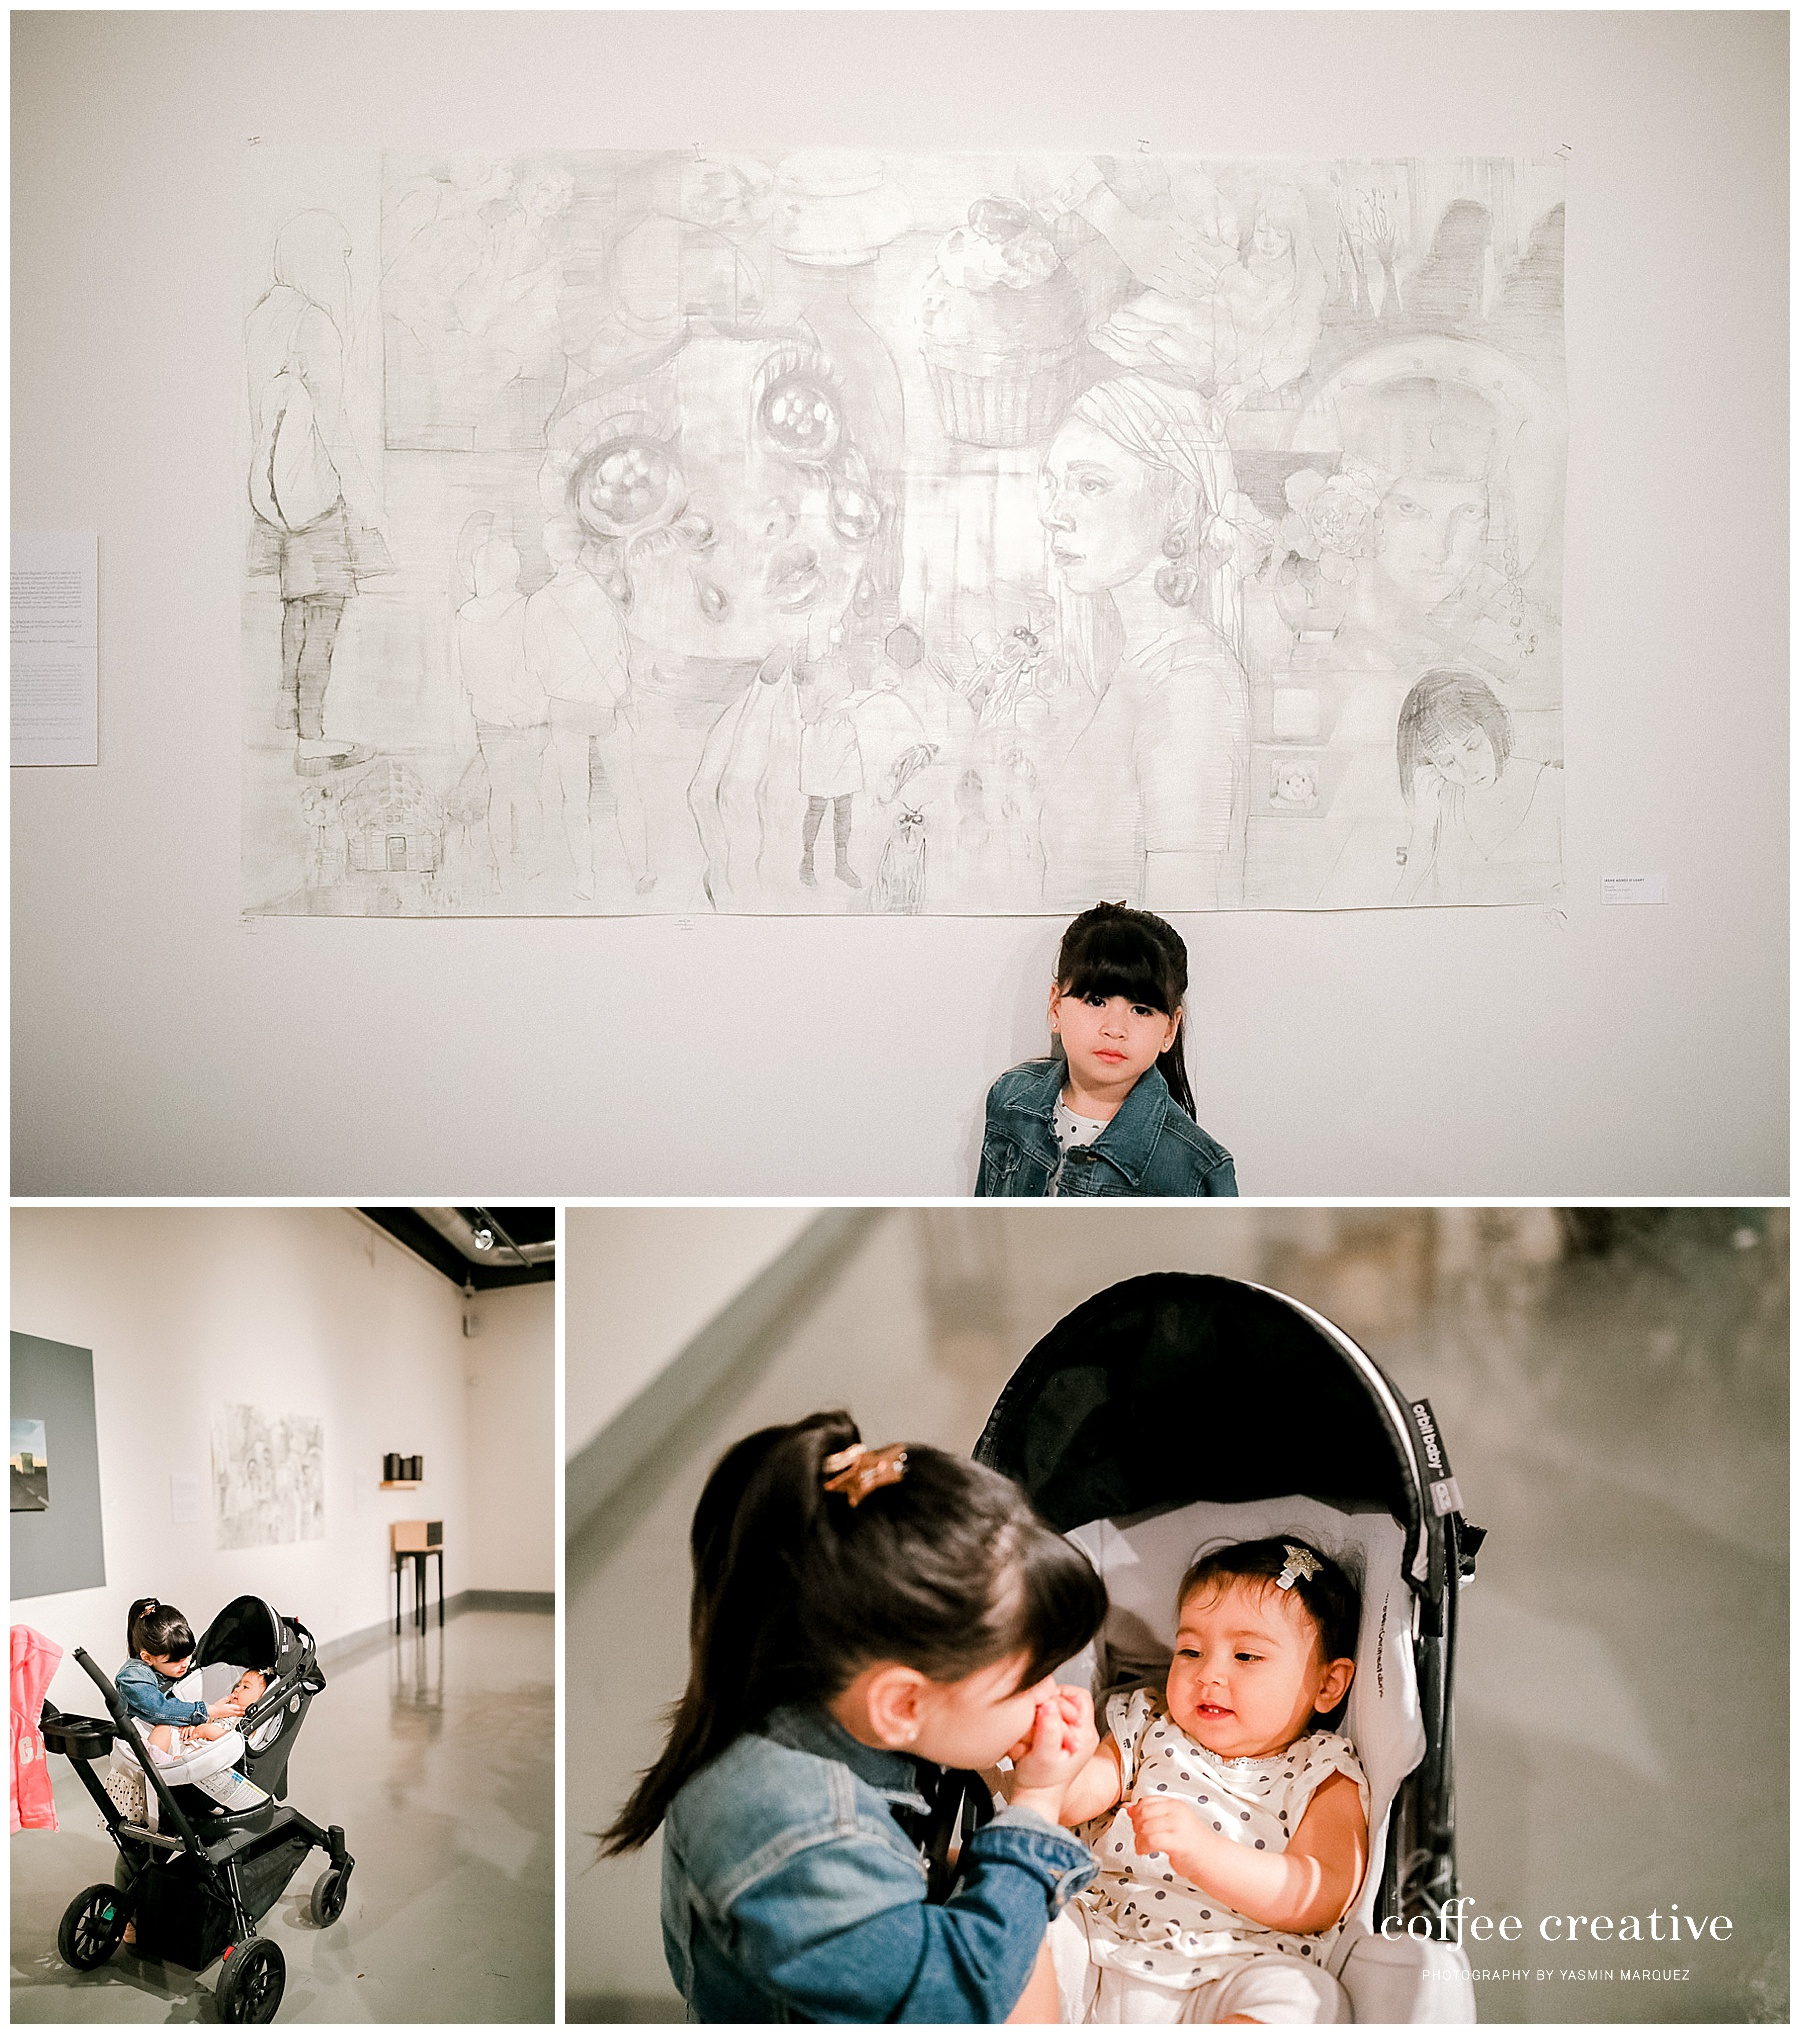 Kids Activities in El Paso, Art museum in el paso, fun things in el paso, el paso art